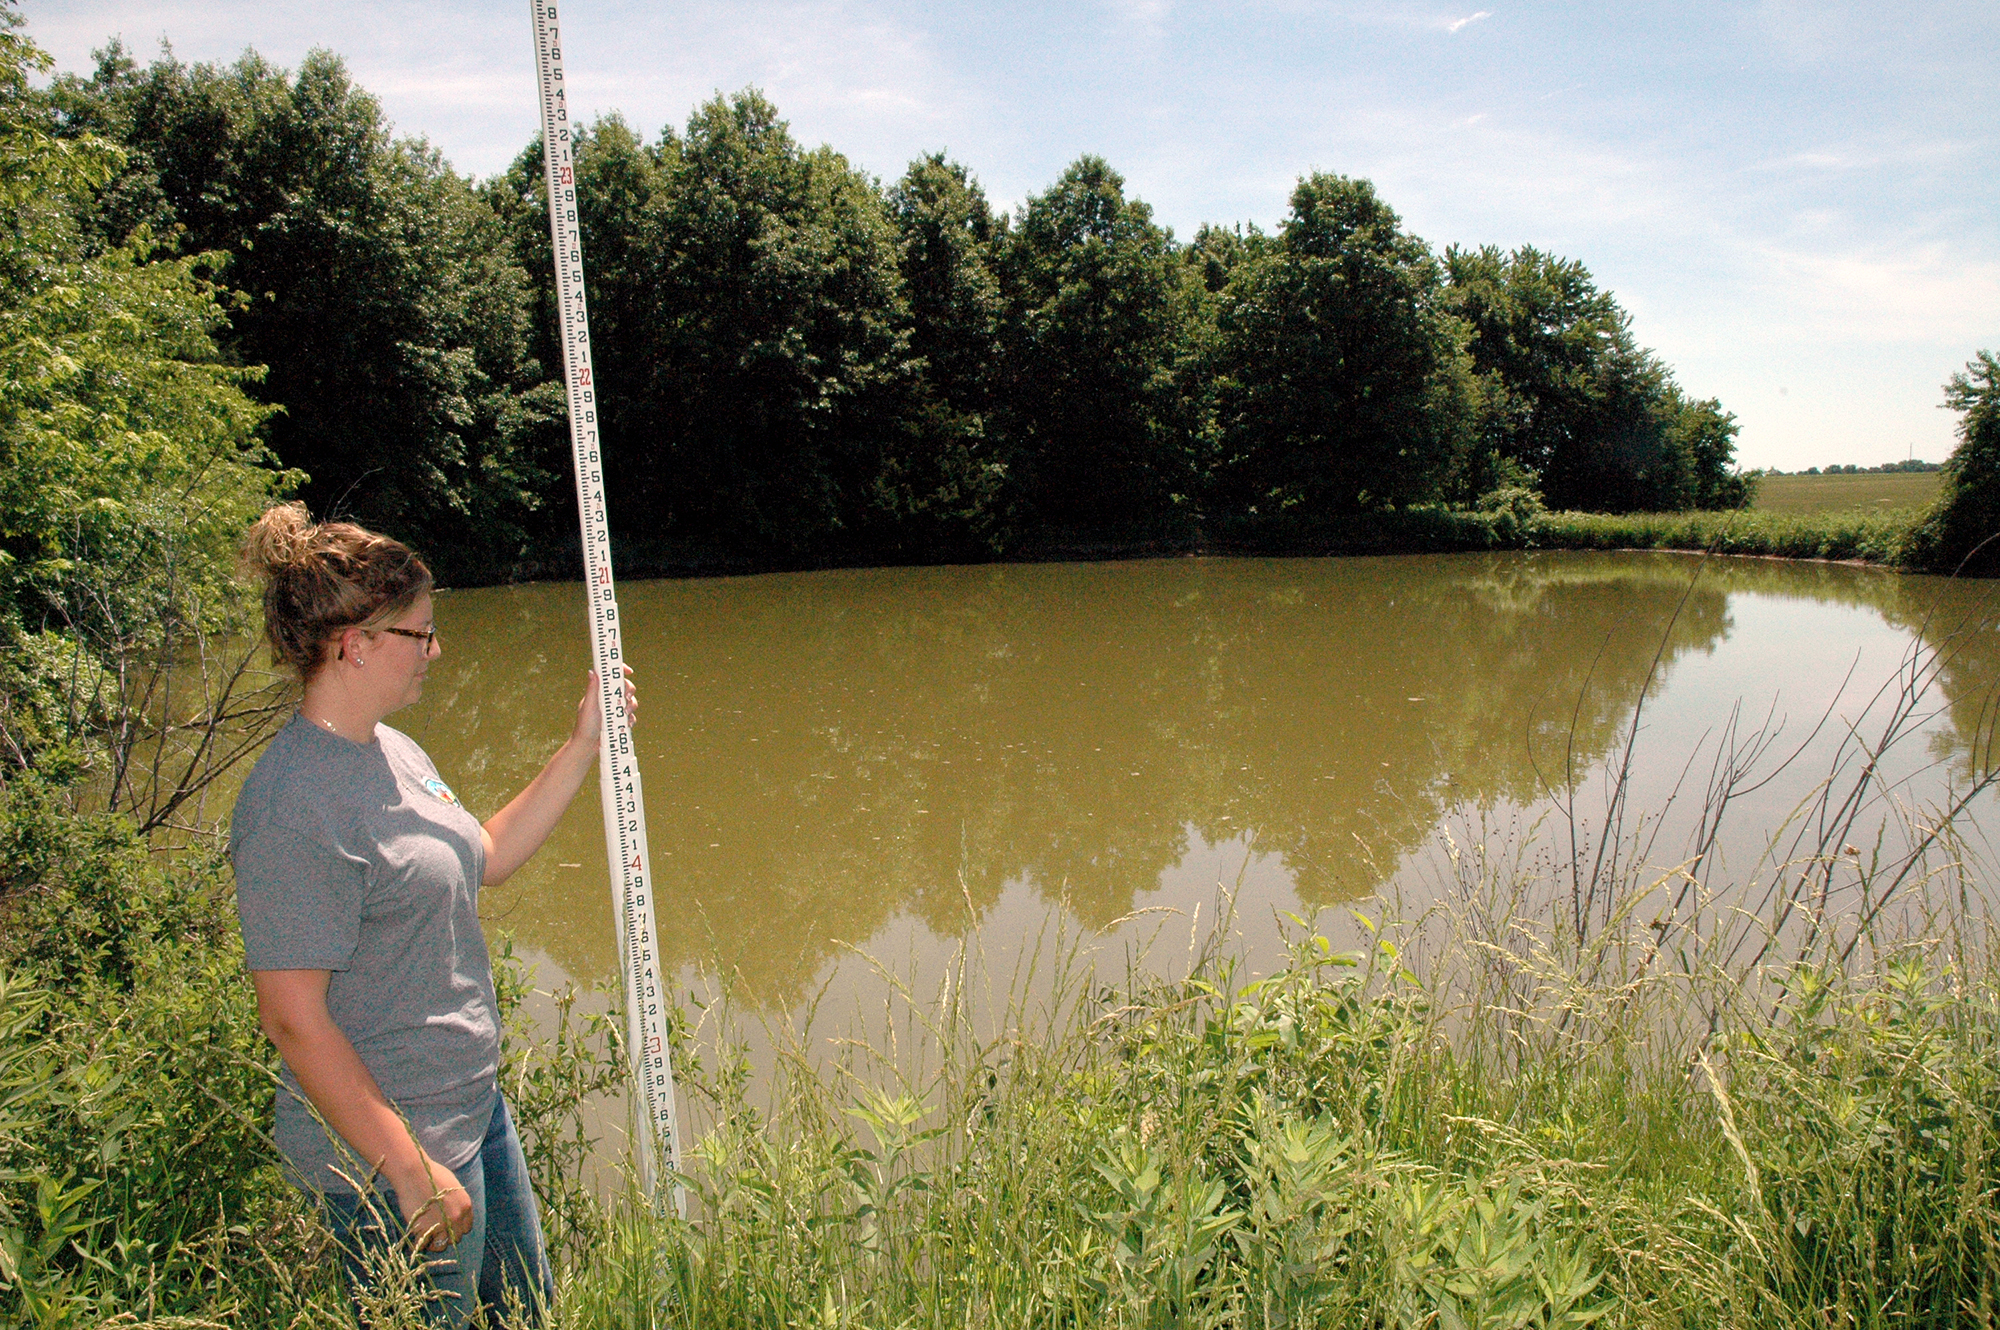 NRCS district technician Cassie Lenzenhuber was part of the team that evaluated Matthew Spiers' pond for gravity-fed tanks.